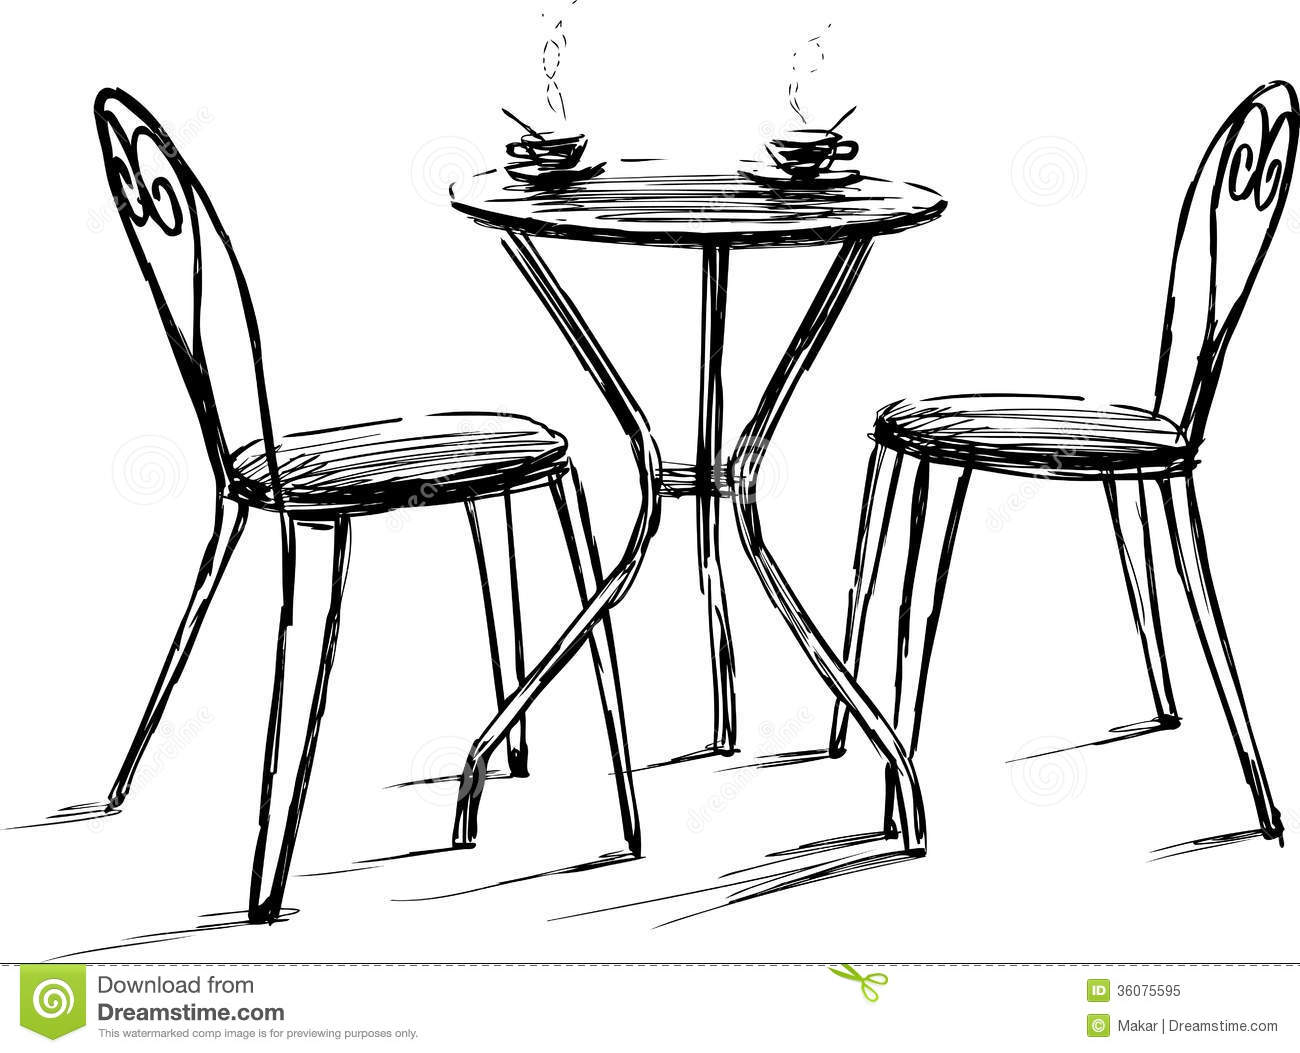 how to draw chairs on a floor plan